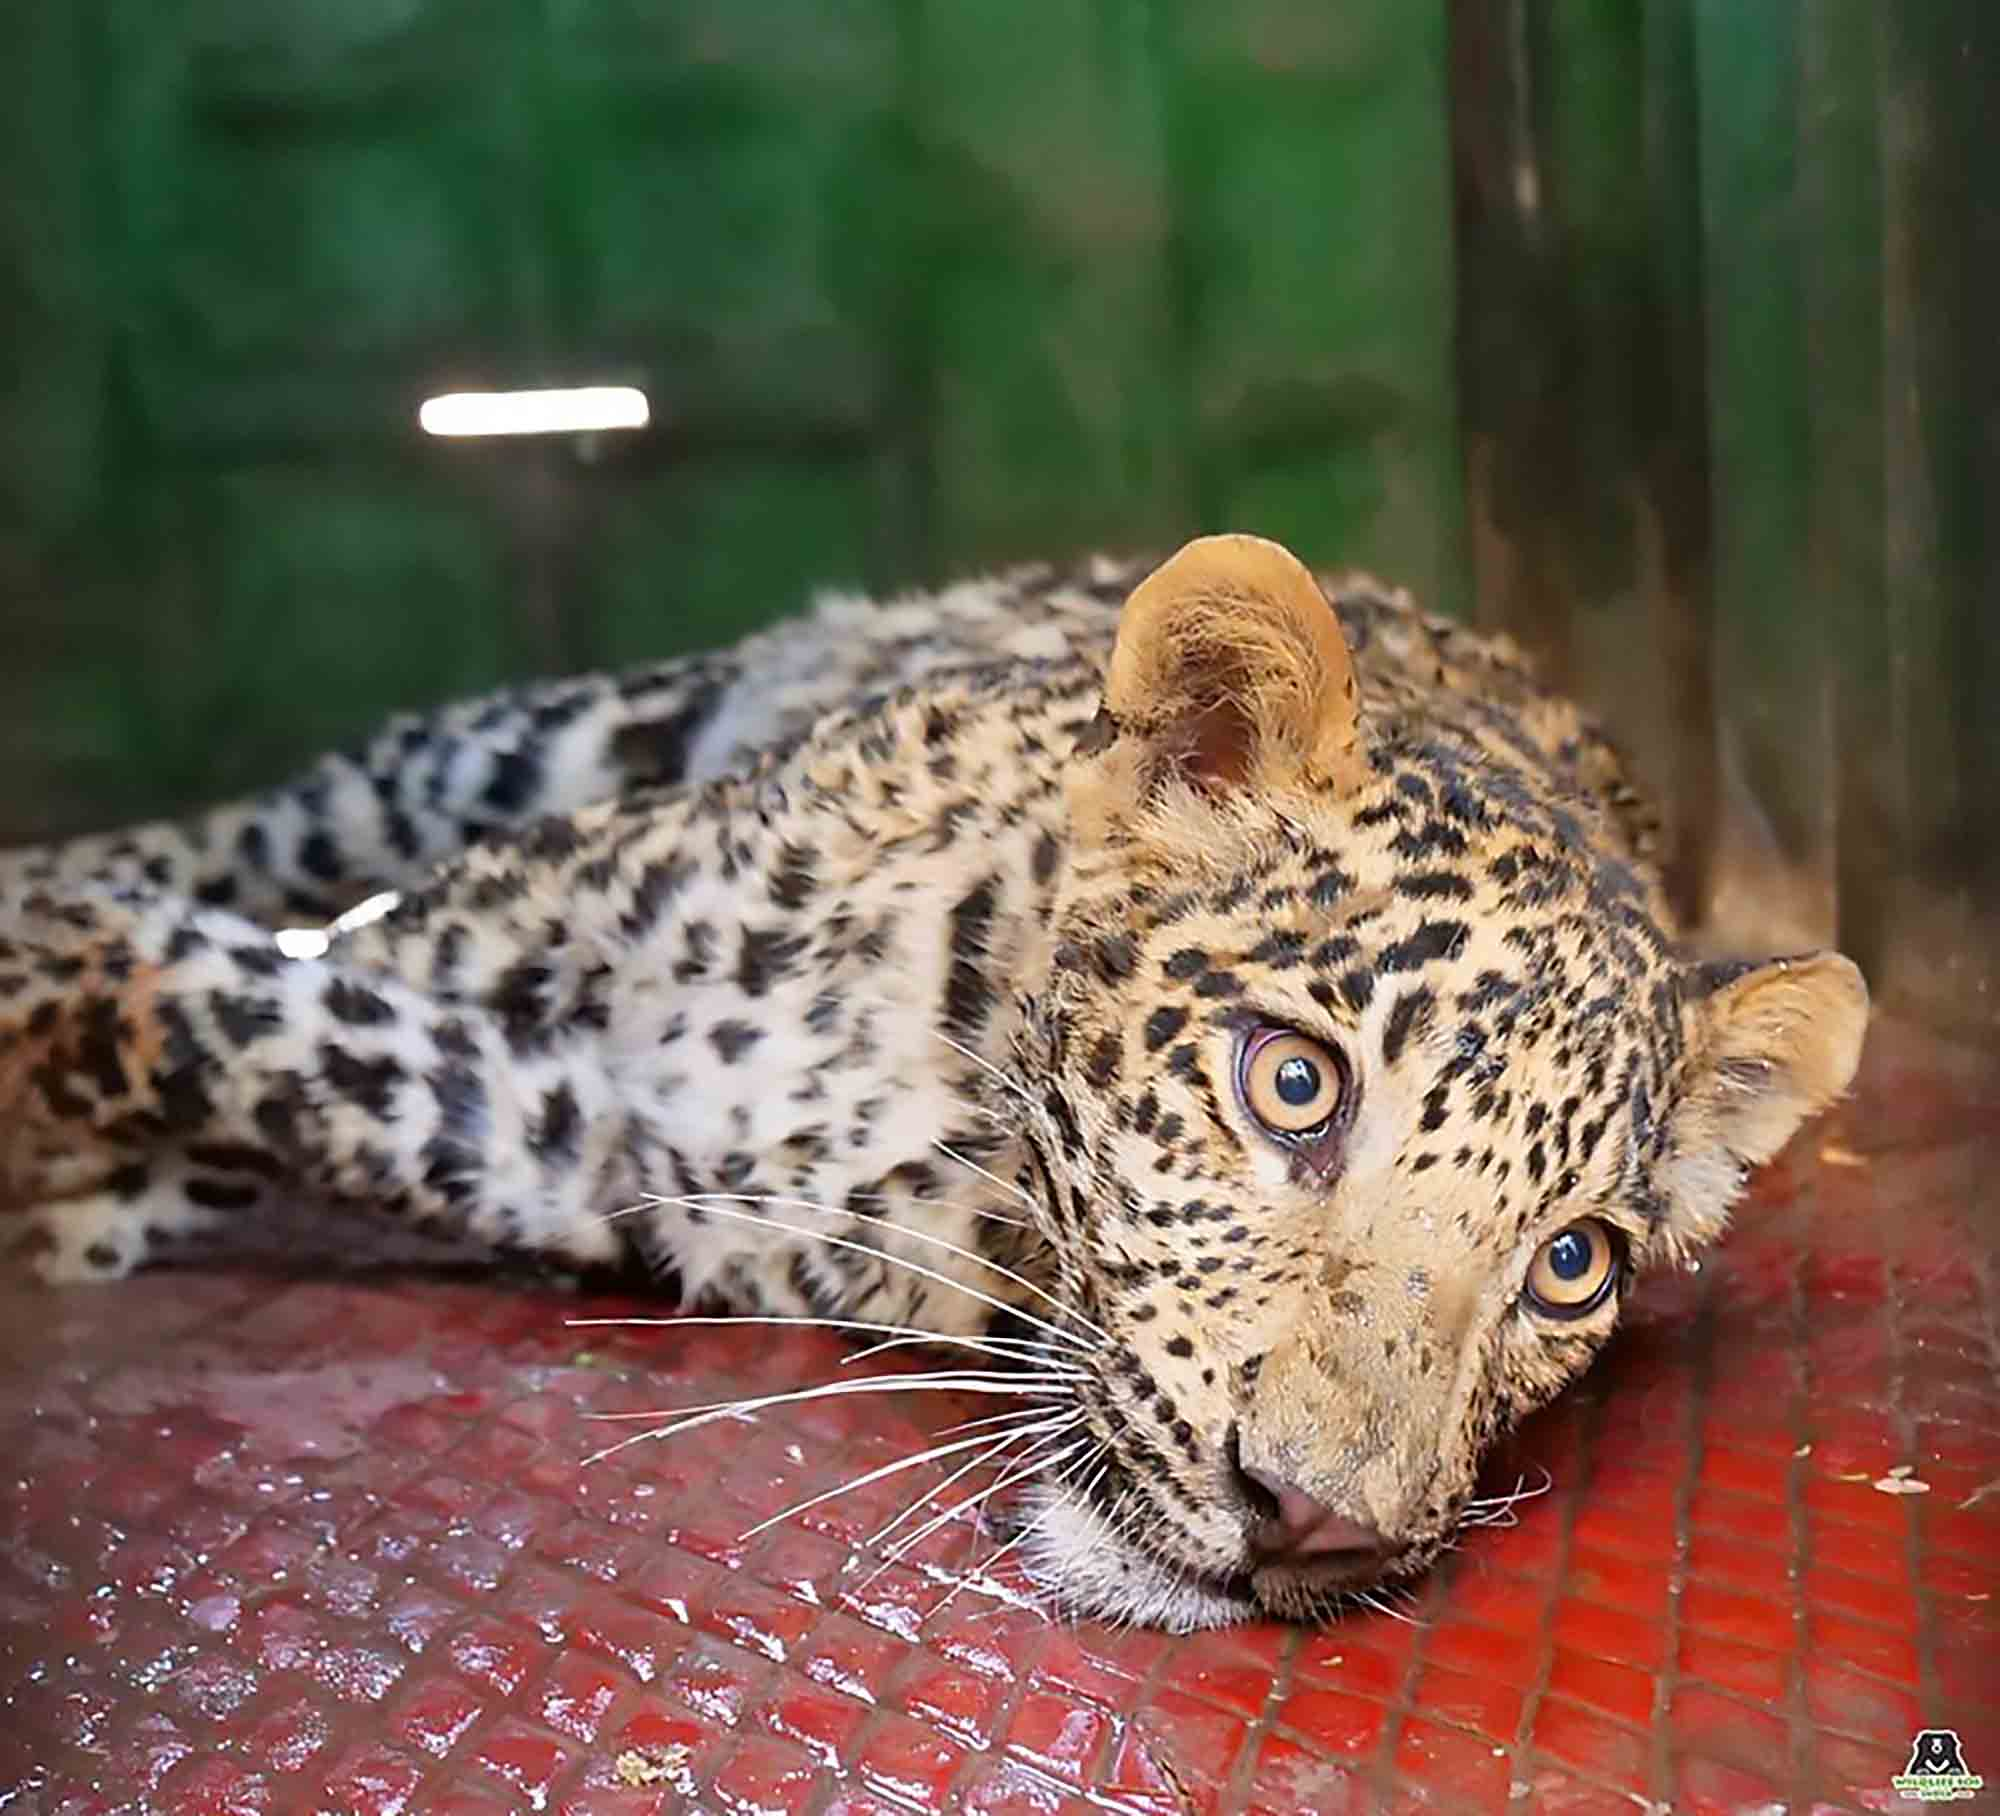 Vet Saves Leopard From Deadly Jaws Of Poachers Trap - ViralTab